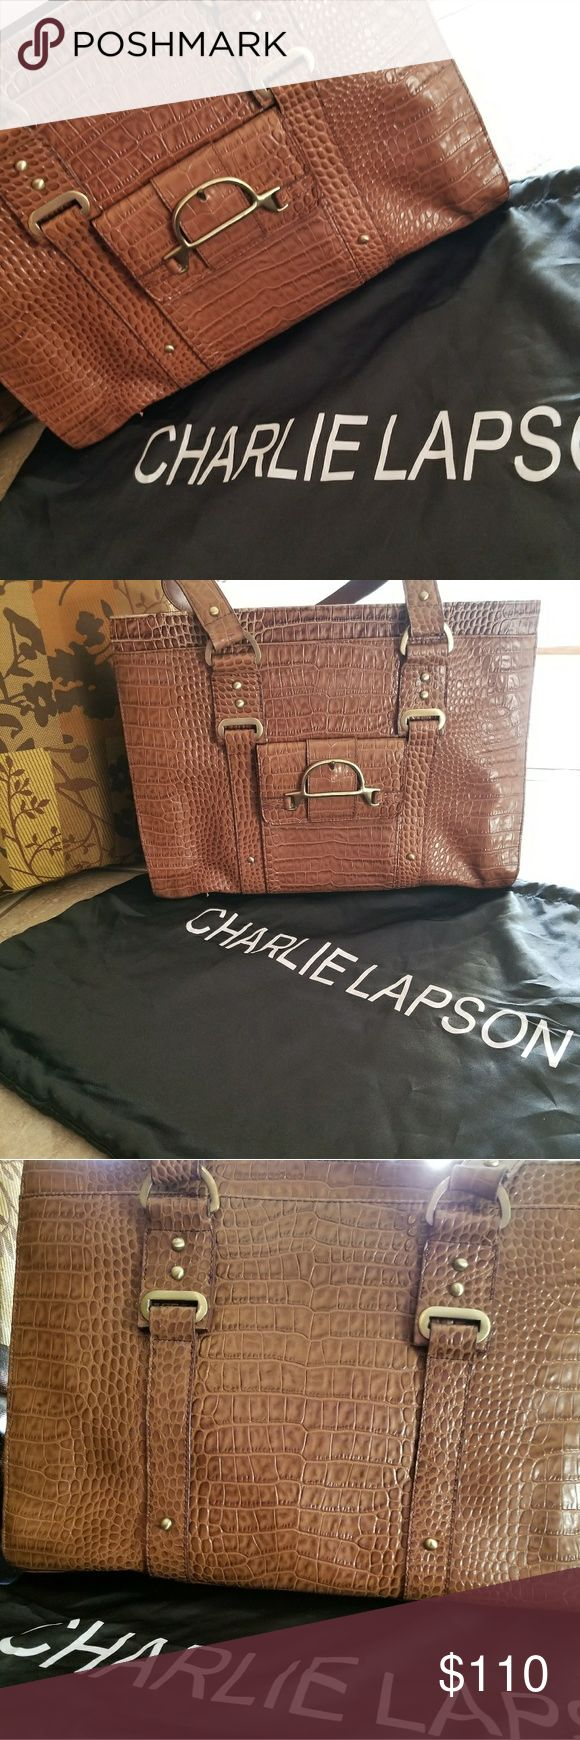 Charlie Lapson Tote Large Brown crocodile embossed leather features double strap with 2 large outside pockets along with 1 small front outside pocket. Purse features a zipper compartment on inside. No stains, pen or pencil marks on inside. Straps not worn. Gently worn once. Purse a little dented from storage only. Comes with original storage bag. Charlie Lapson is known for making exclusive leather handbags for the stars! An original purchase from formerly known Shop Nbc. Charlie Lapson Bags…